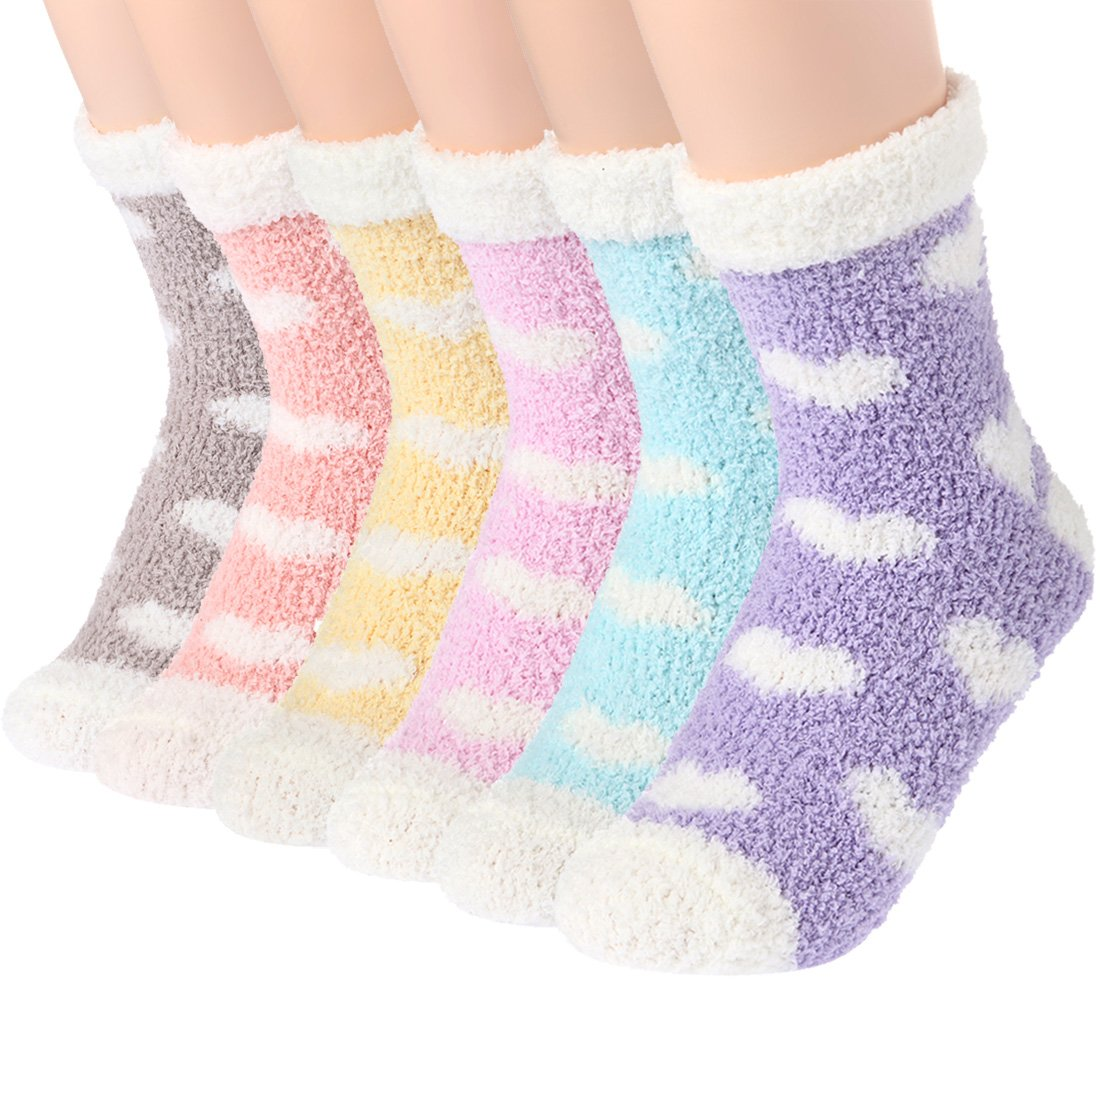 Plush Slipper Socks Women - Colorful Warm Crew Socks Cozy Soft 6 Pairs for Winter Indoor (Heart-shaped Pattern)